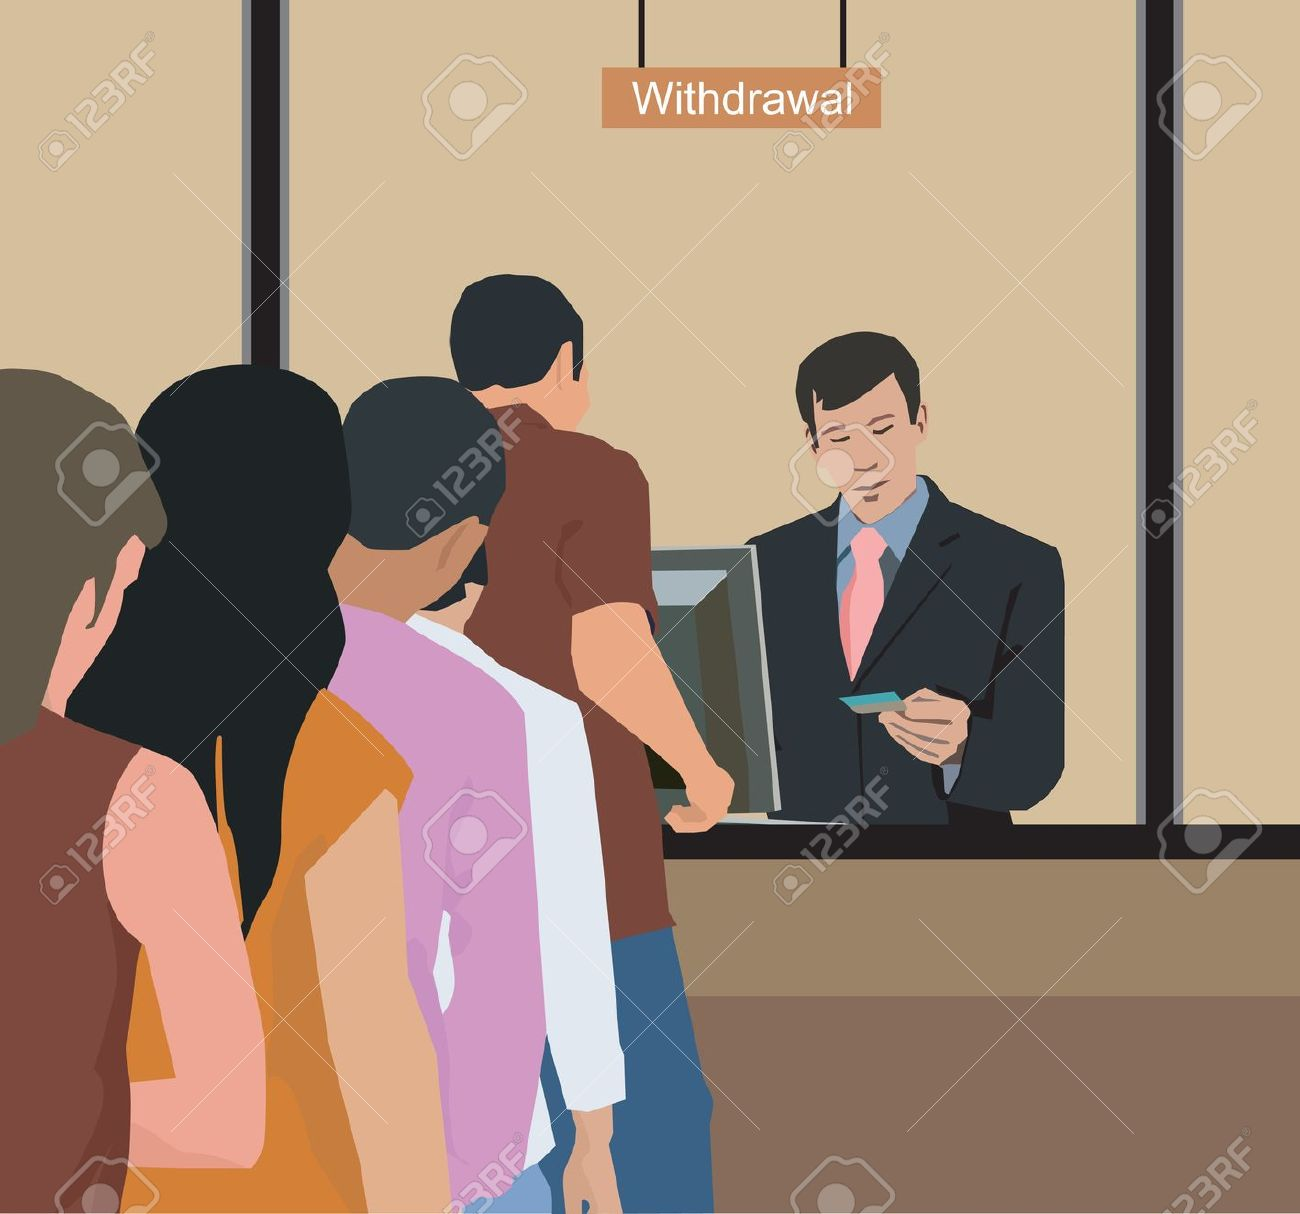 Clipart animations of bank of people jpg library download Clipart animations of bank of people - ClipartFest jpg library download